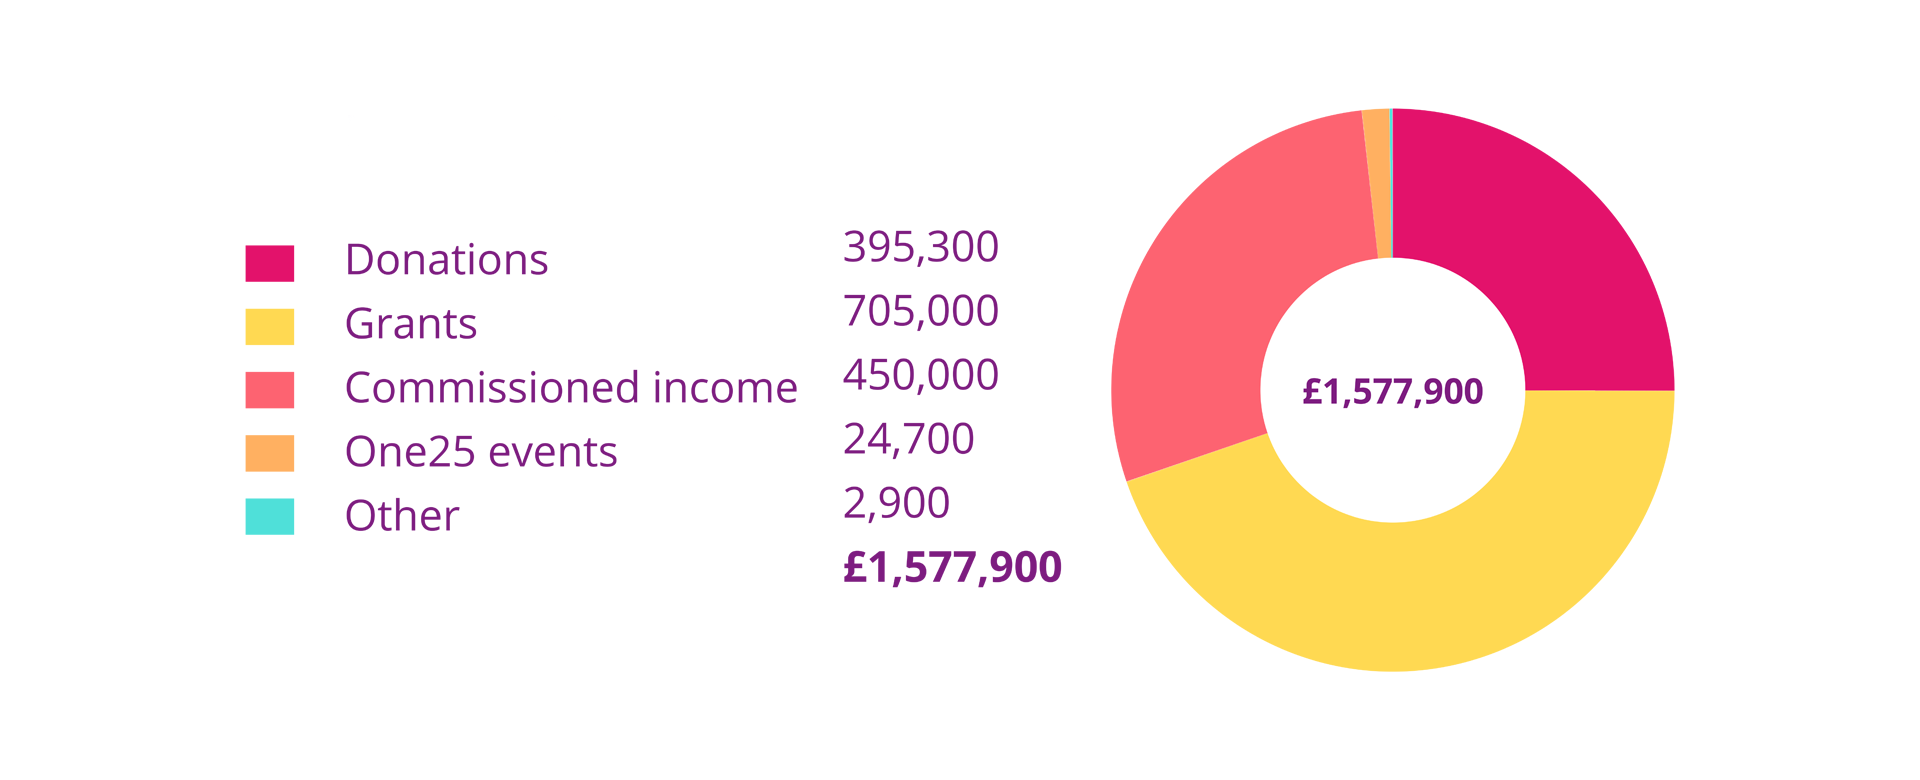 Donations: £395,300, Grants: £705,000, Commissioned income: £450,000, One25 events: £24,700, Other: £2,900, Total: £1,577,900